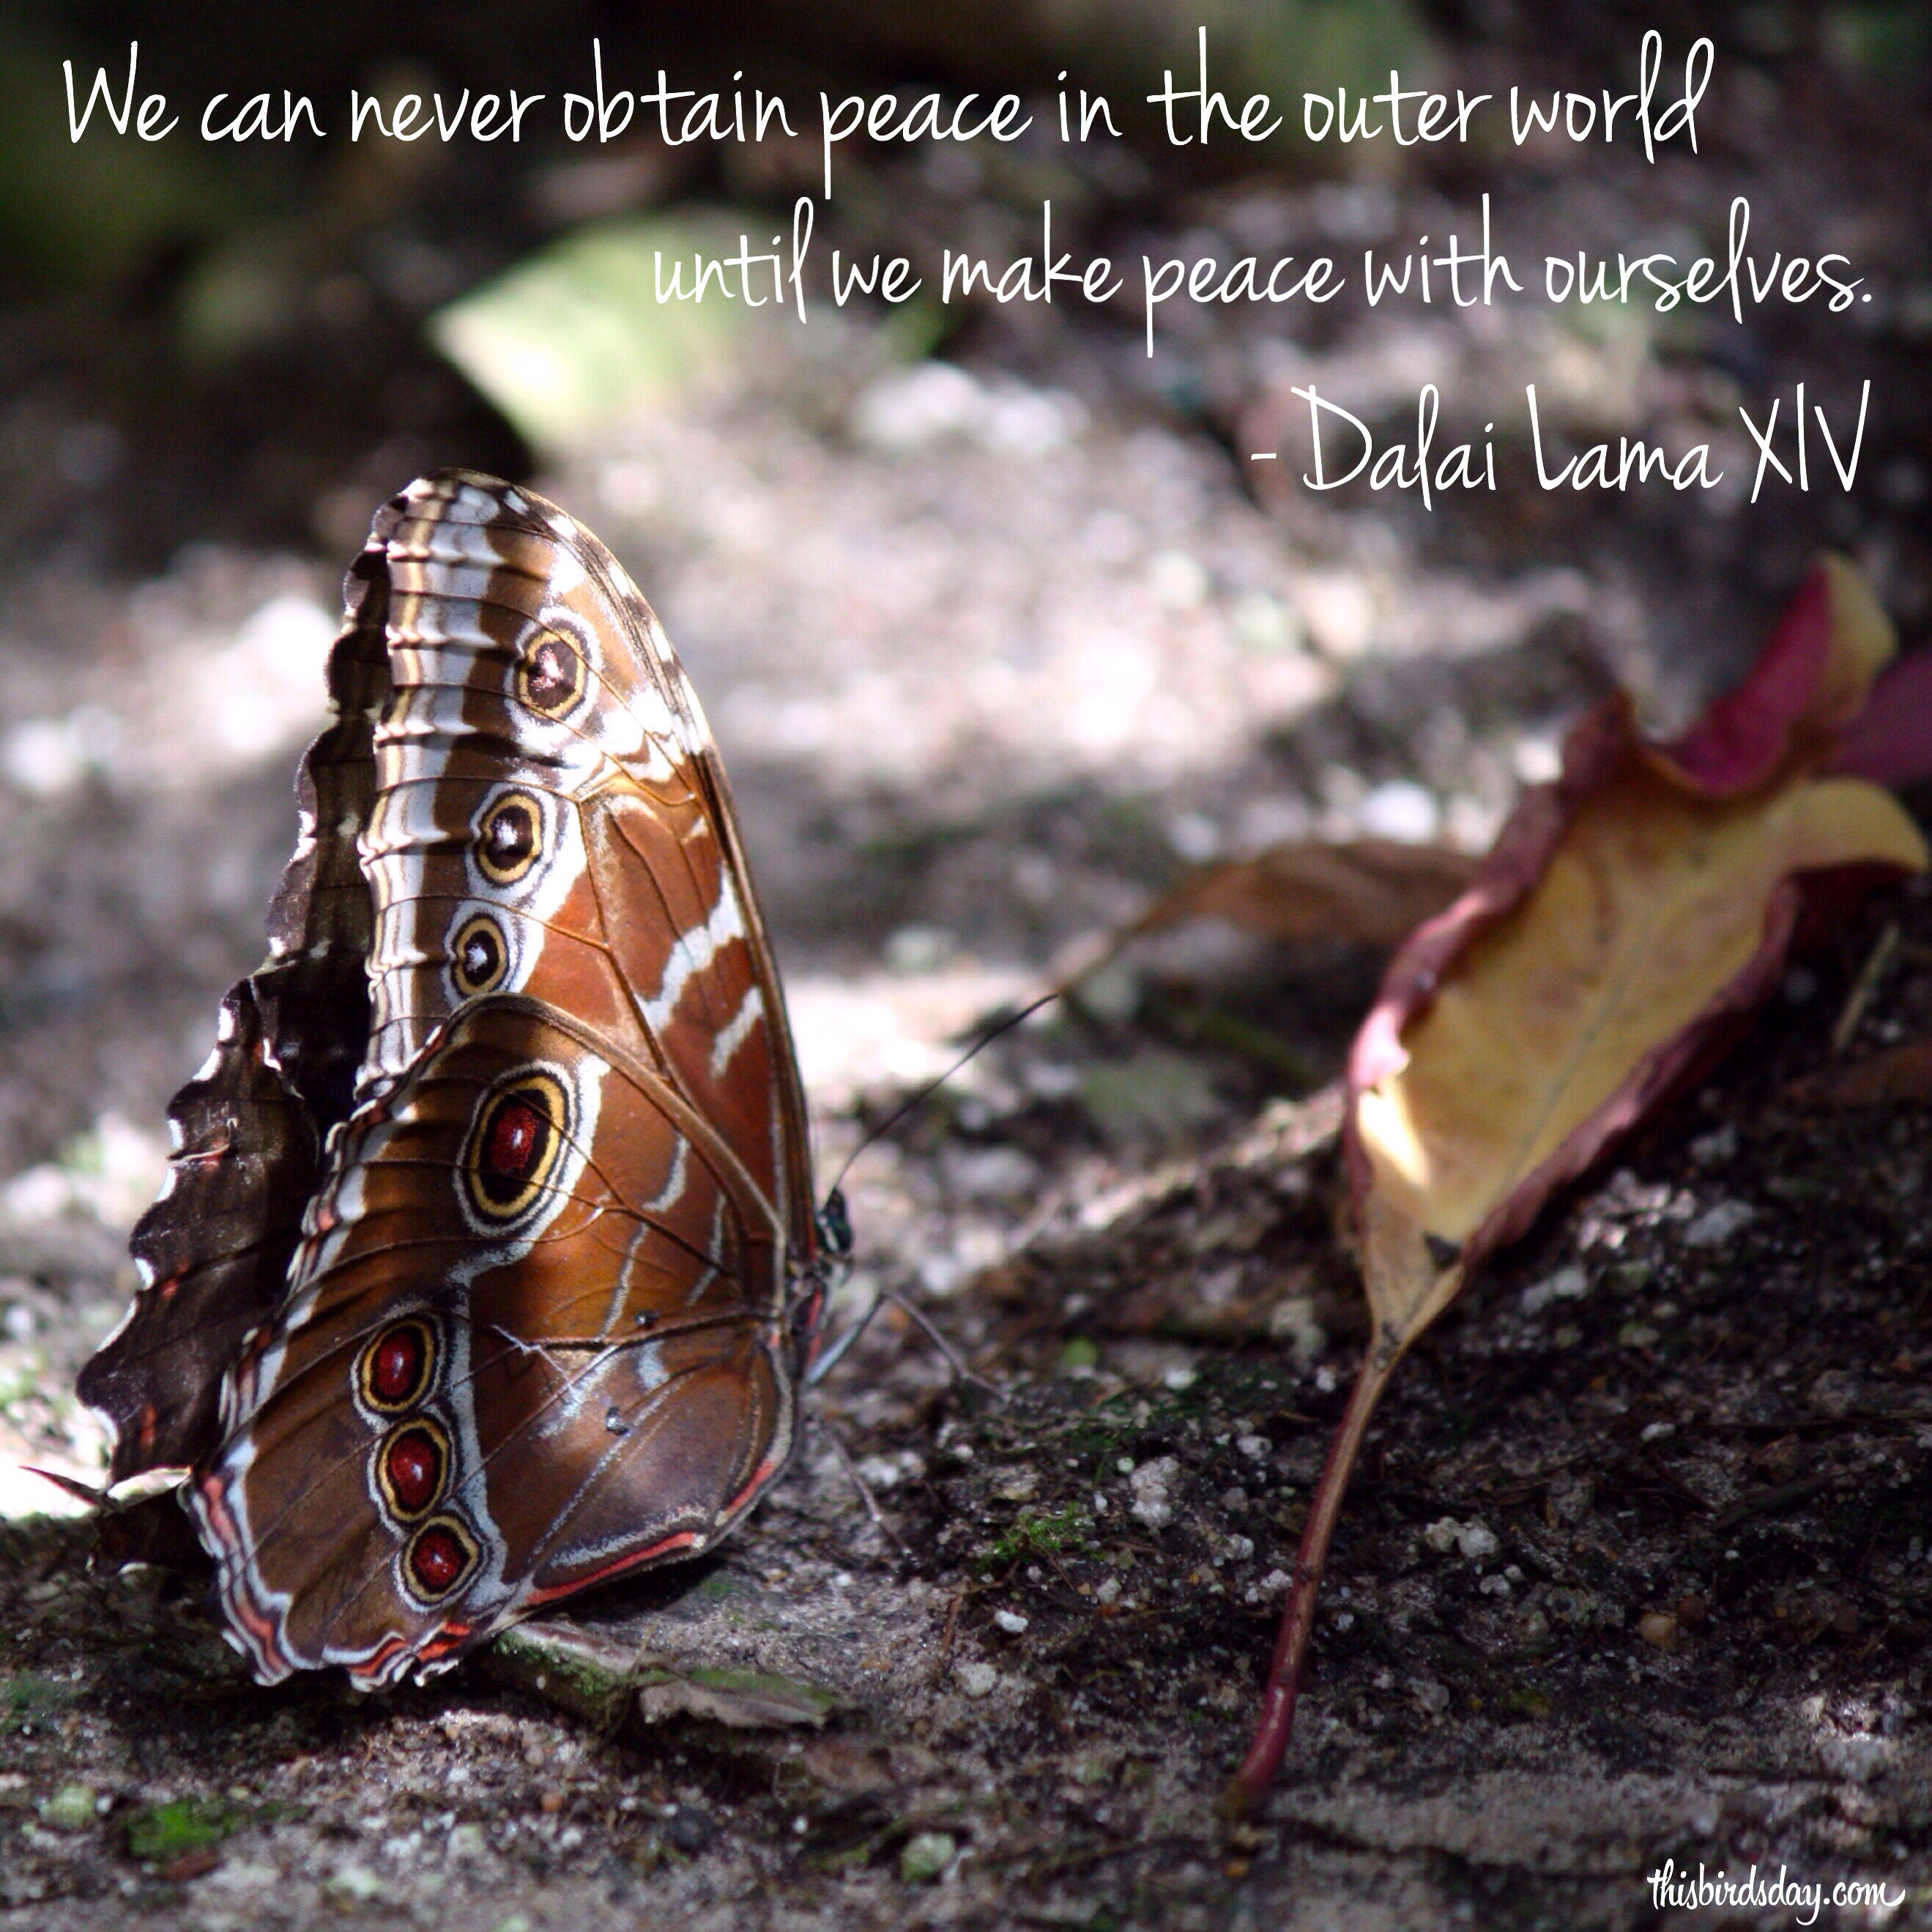 We can never obtain peace in the outer world until we make peace with ourselves. Photo copyright: Sheri Landry